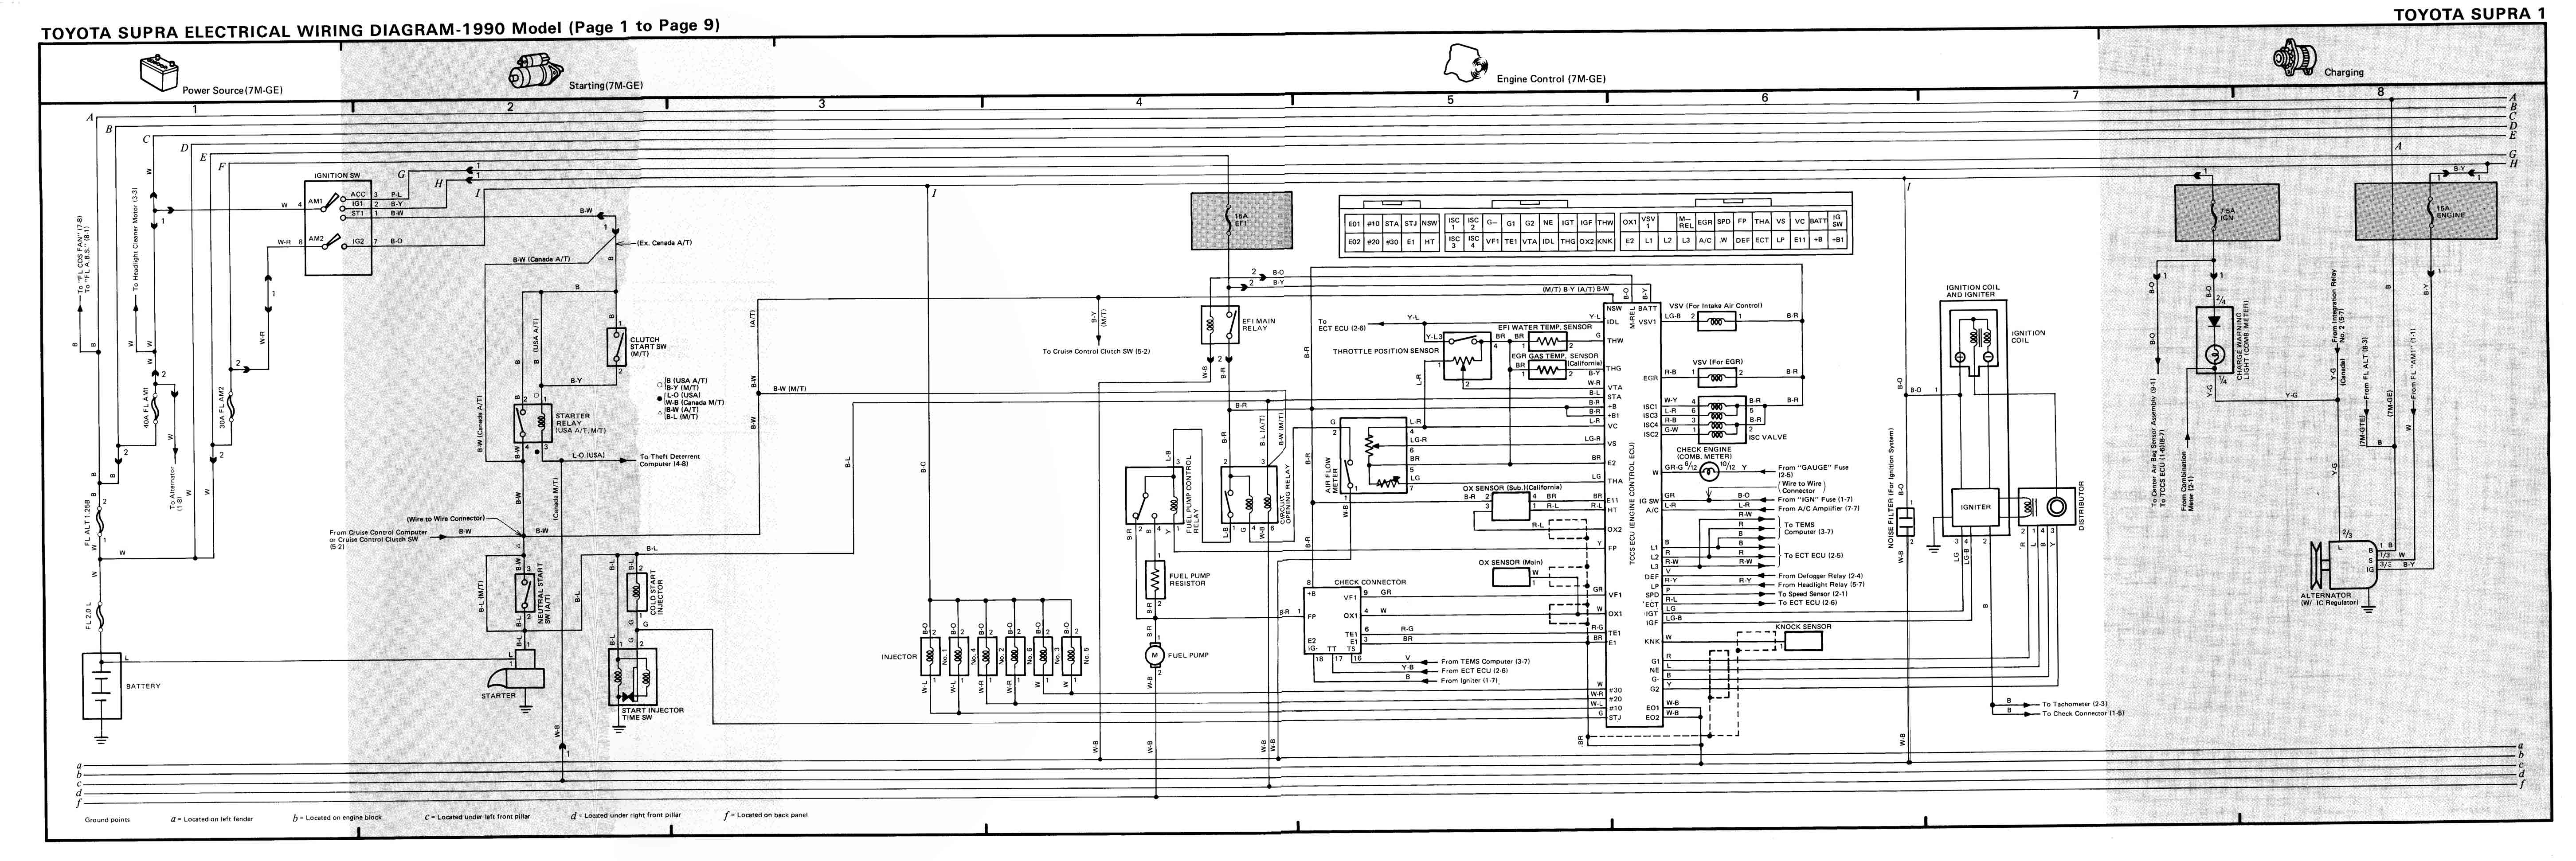 Flyout on Electrical Wiring Diagram For 2jz Ge